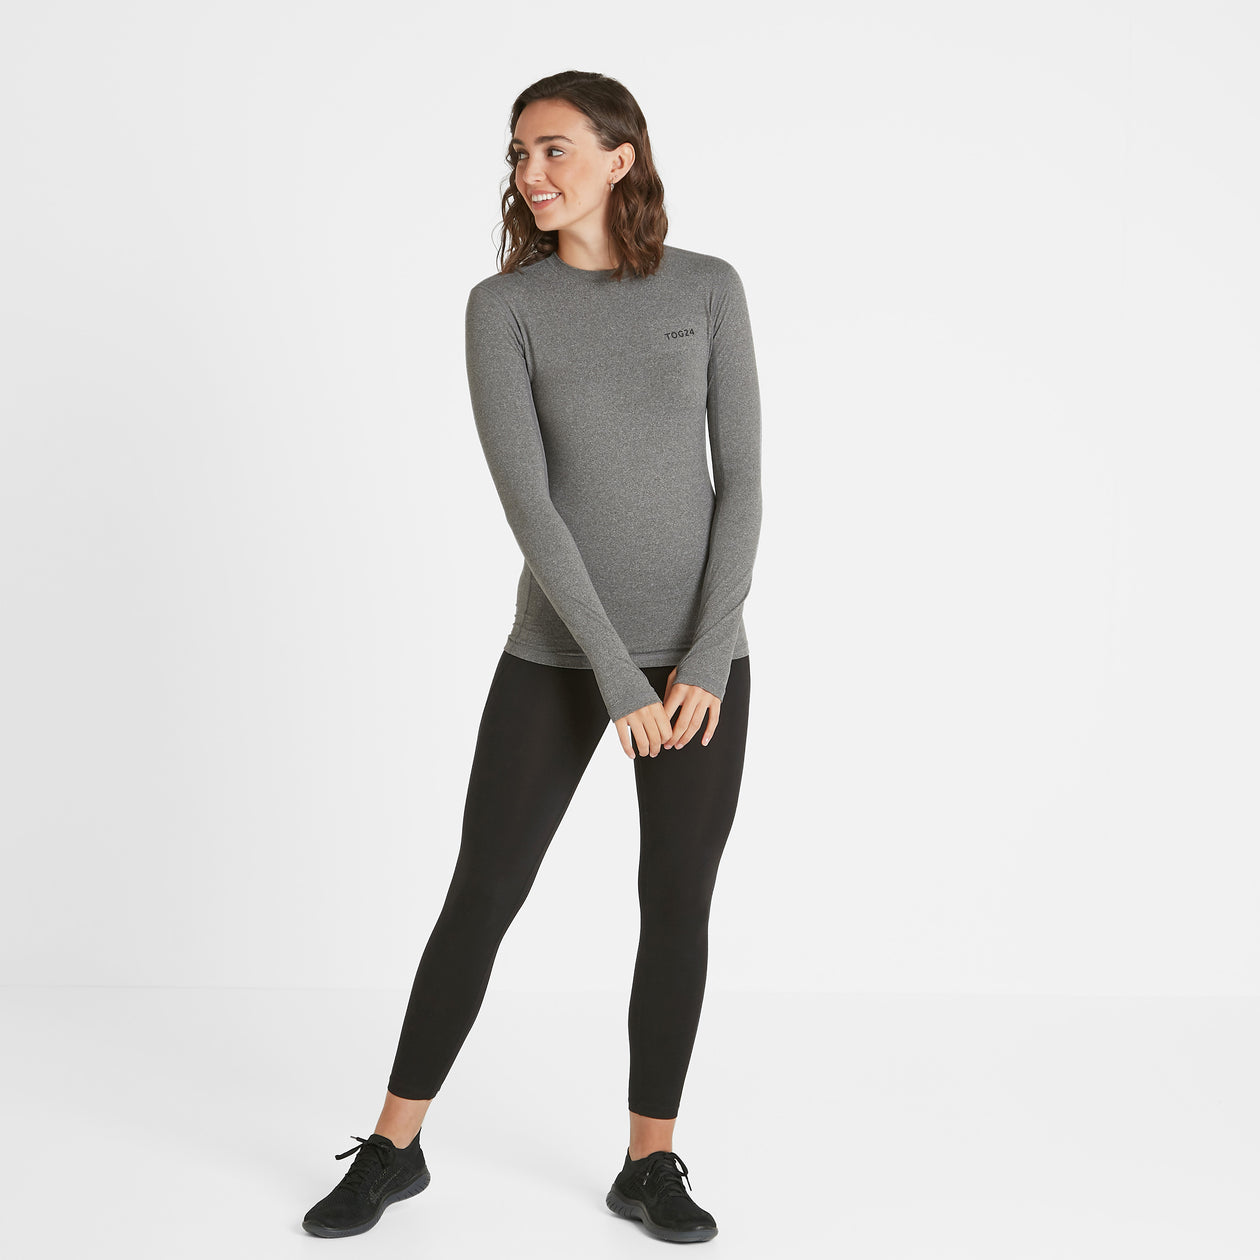 Snowdon Womens Thermal Crew Neck - Grey Marl image 4